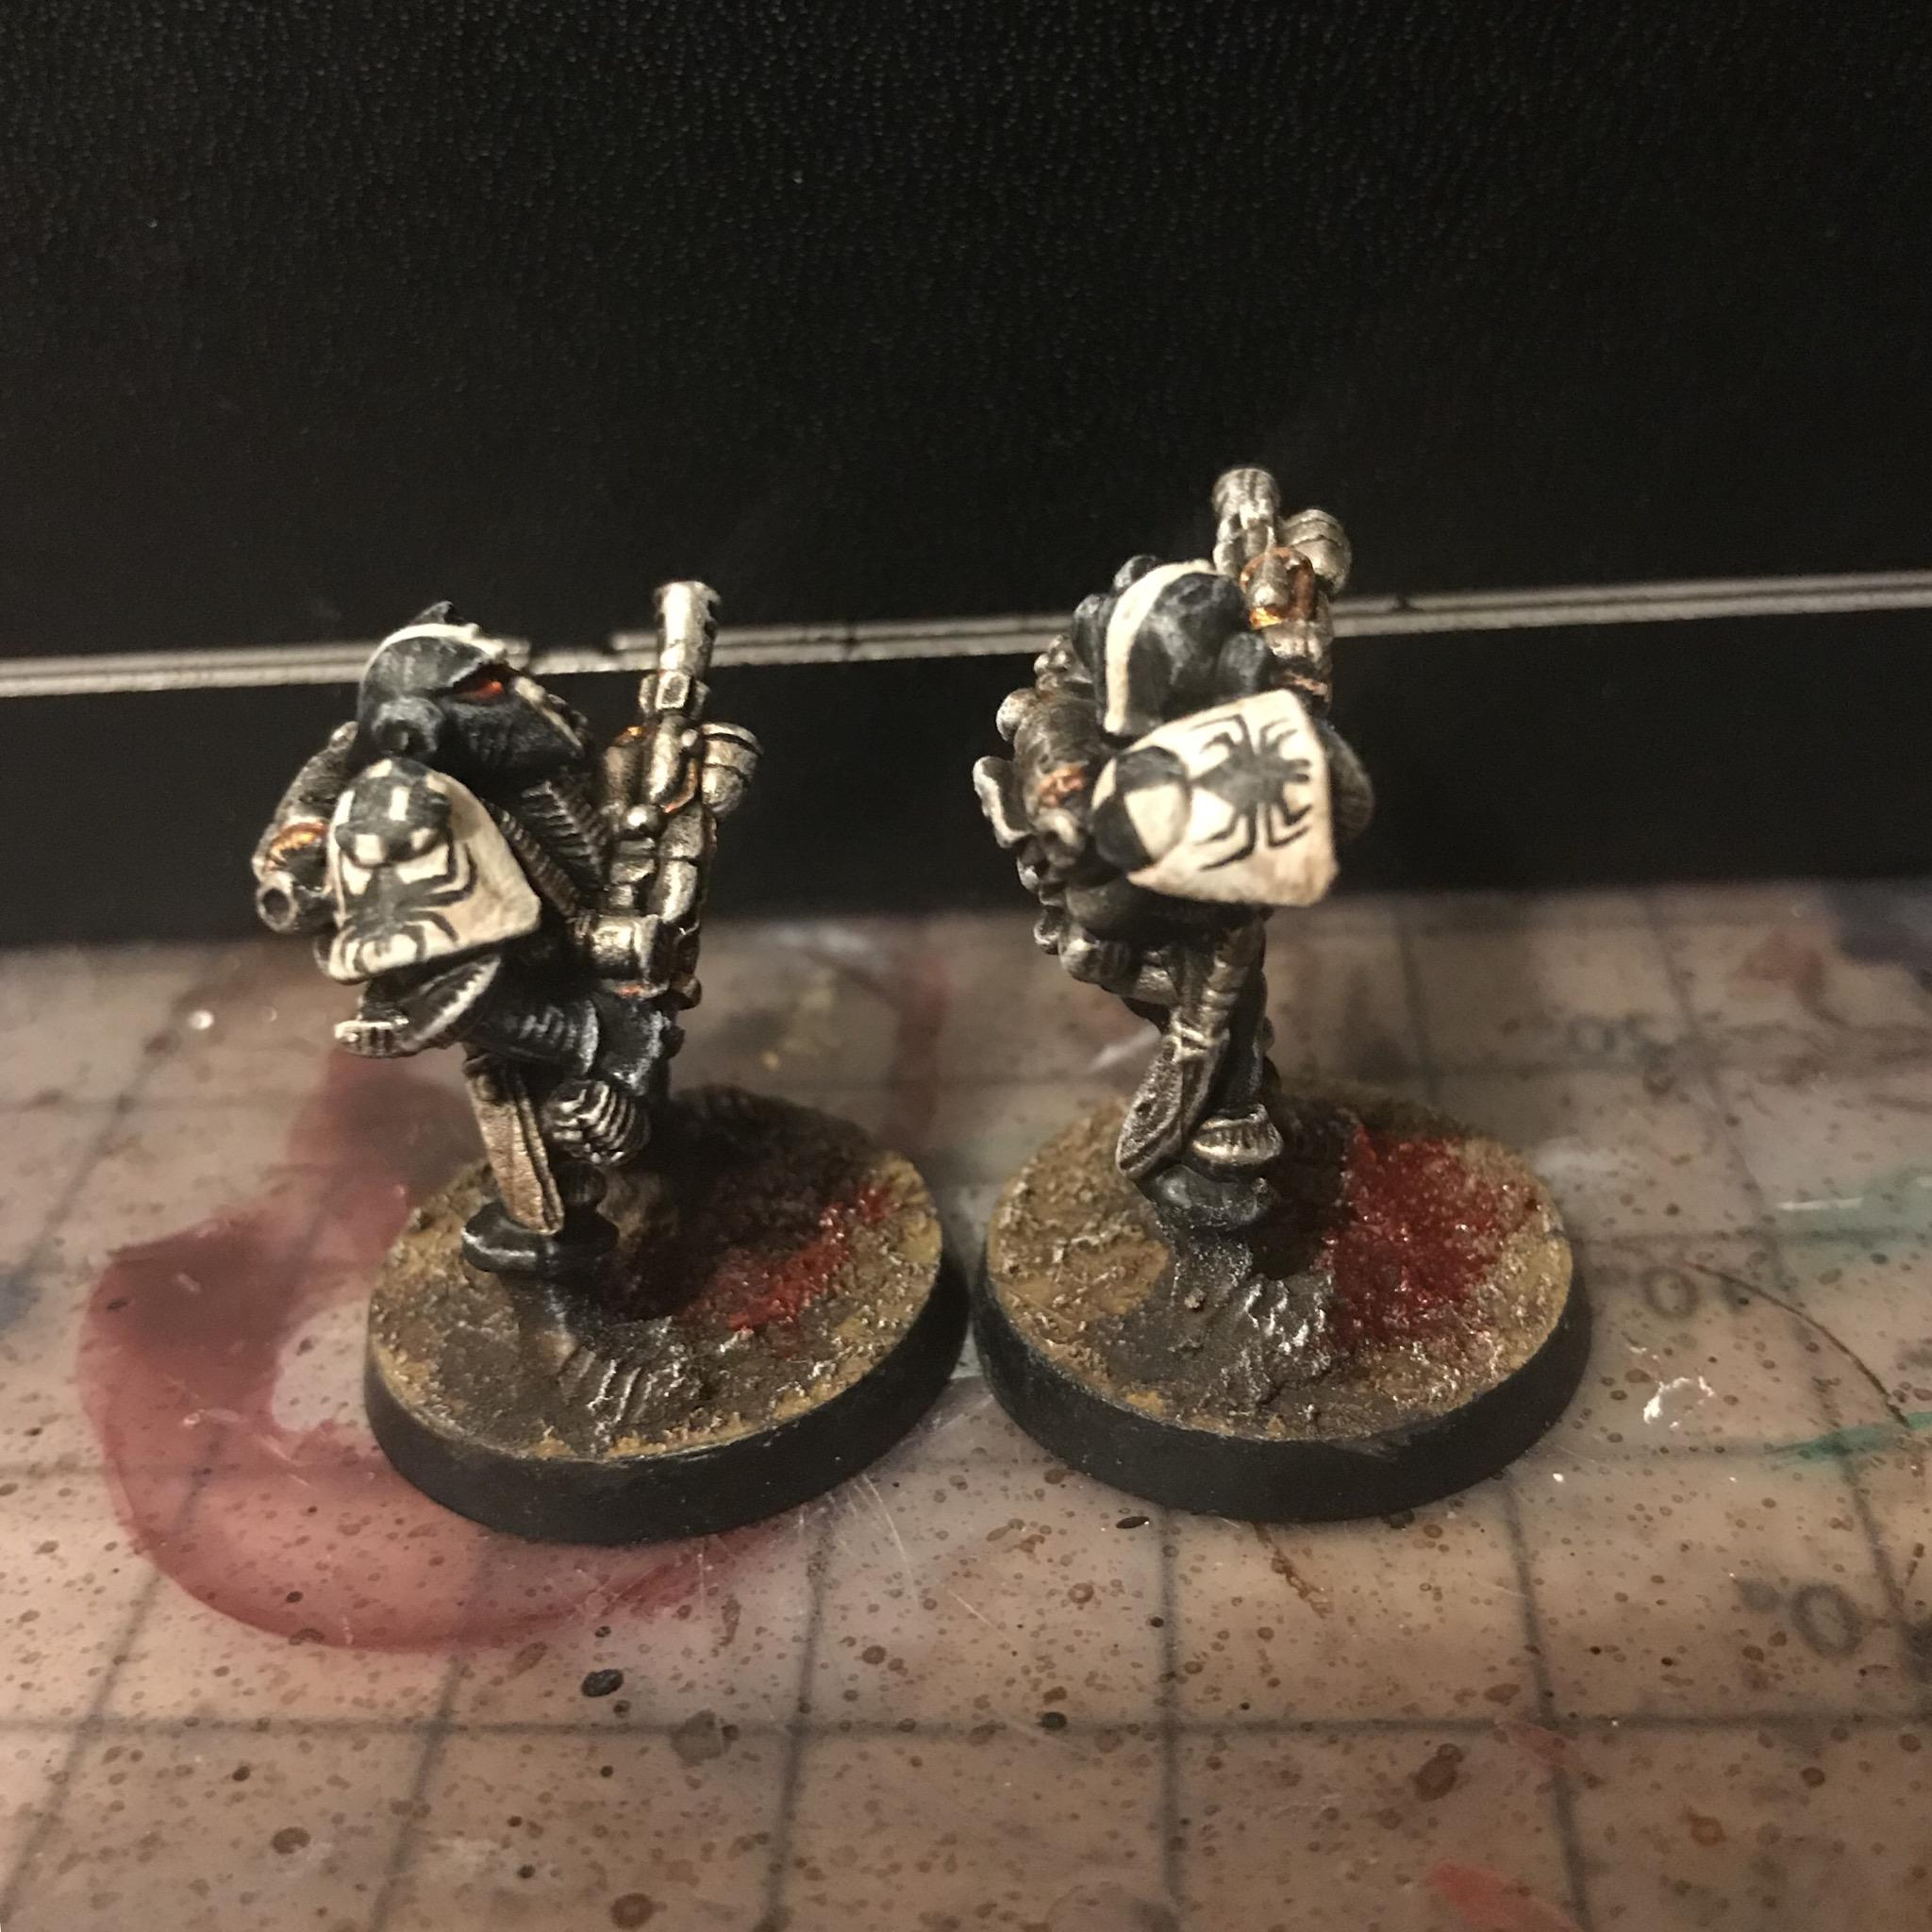 117, 2nd, 41st, Adeptus, And, Armor, Astartes, Badab, Battle, Blade, Bolters, Boltguns, Brother, Brothers, Brutal, C100, Chaos, Chaotic, Chapter, Chapters, Combi, Combi-bolter, Combi-disintegrator, Combi-weapon, Corsairs, Damned, Dark, Darkness, Deep, Disintegrator, Eye, Far, Fj, Founding, Future, Gate, God, Gods, Grim, Heresy, Hobby, Homage, Horus, Human, Humans, Imperial, Imperium, Kaos, Kill, Legionaries, Legionnaire, Lost, Malal, Malice, Man, Mankind, Millennium, Of, Oldhammer, Painted, Pirates, Power, Power Armor, Power Armored, Powers, Raiders, Realms, Recon, Renegade, Renegades, Retro, Rogue, Ruinous, Runner, Second, Slaves, Soldier, Space, Space Marines, Spartan, Spider, Spiders, Squad, Successor, Tannhäuser, Tannhauser, Team, Teams, Terror, To, Trader, Traders, Traitor, Trooper, Troopers, Troops, Unit, Void, War, Warhammer 40,000, Warhammer Fantasy, Warp, Weapon